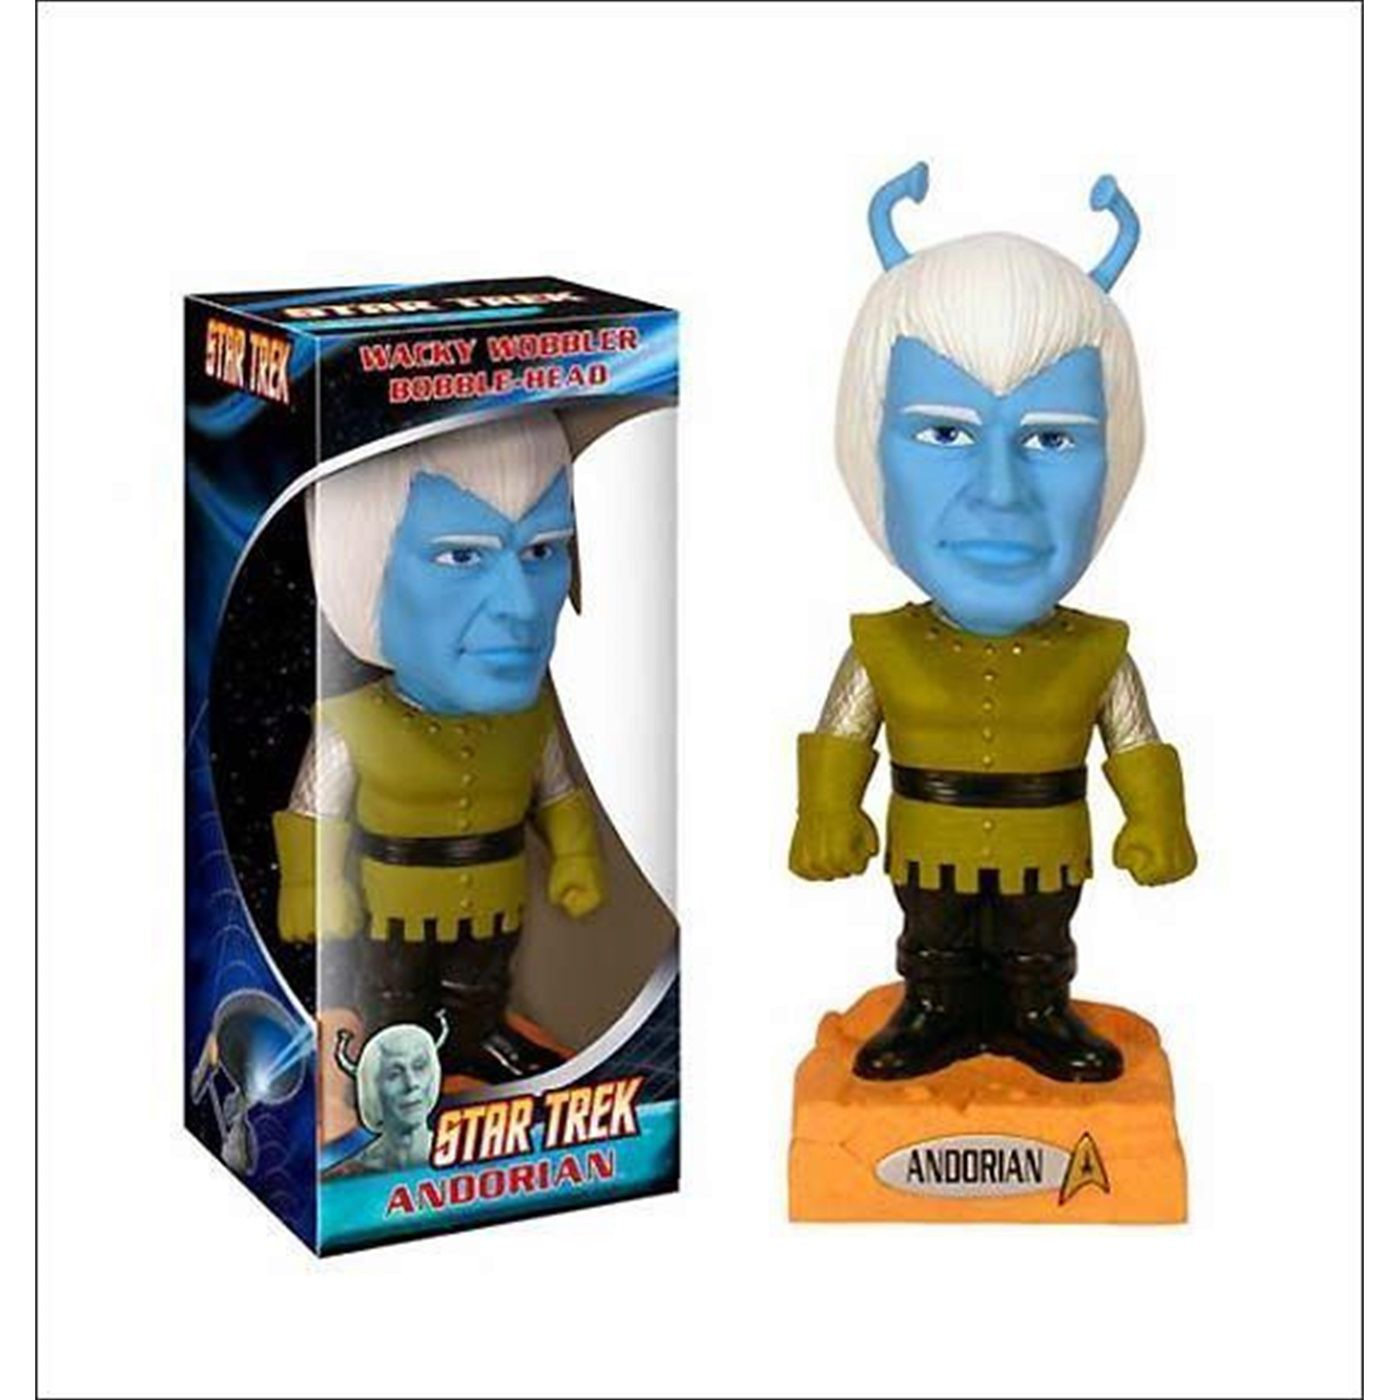 Star Trek Andorian Wacky Wobbler Bobble Head